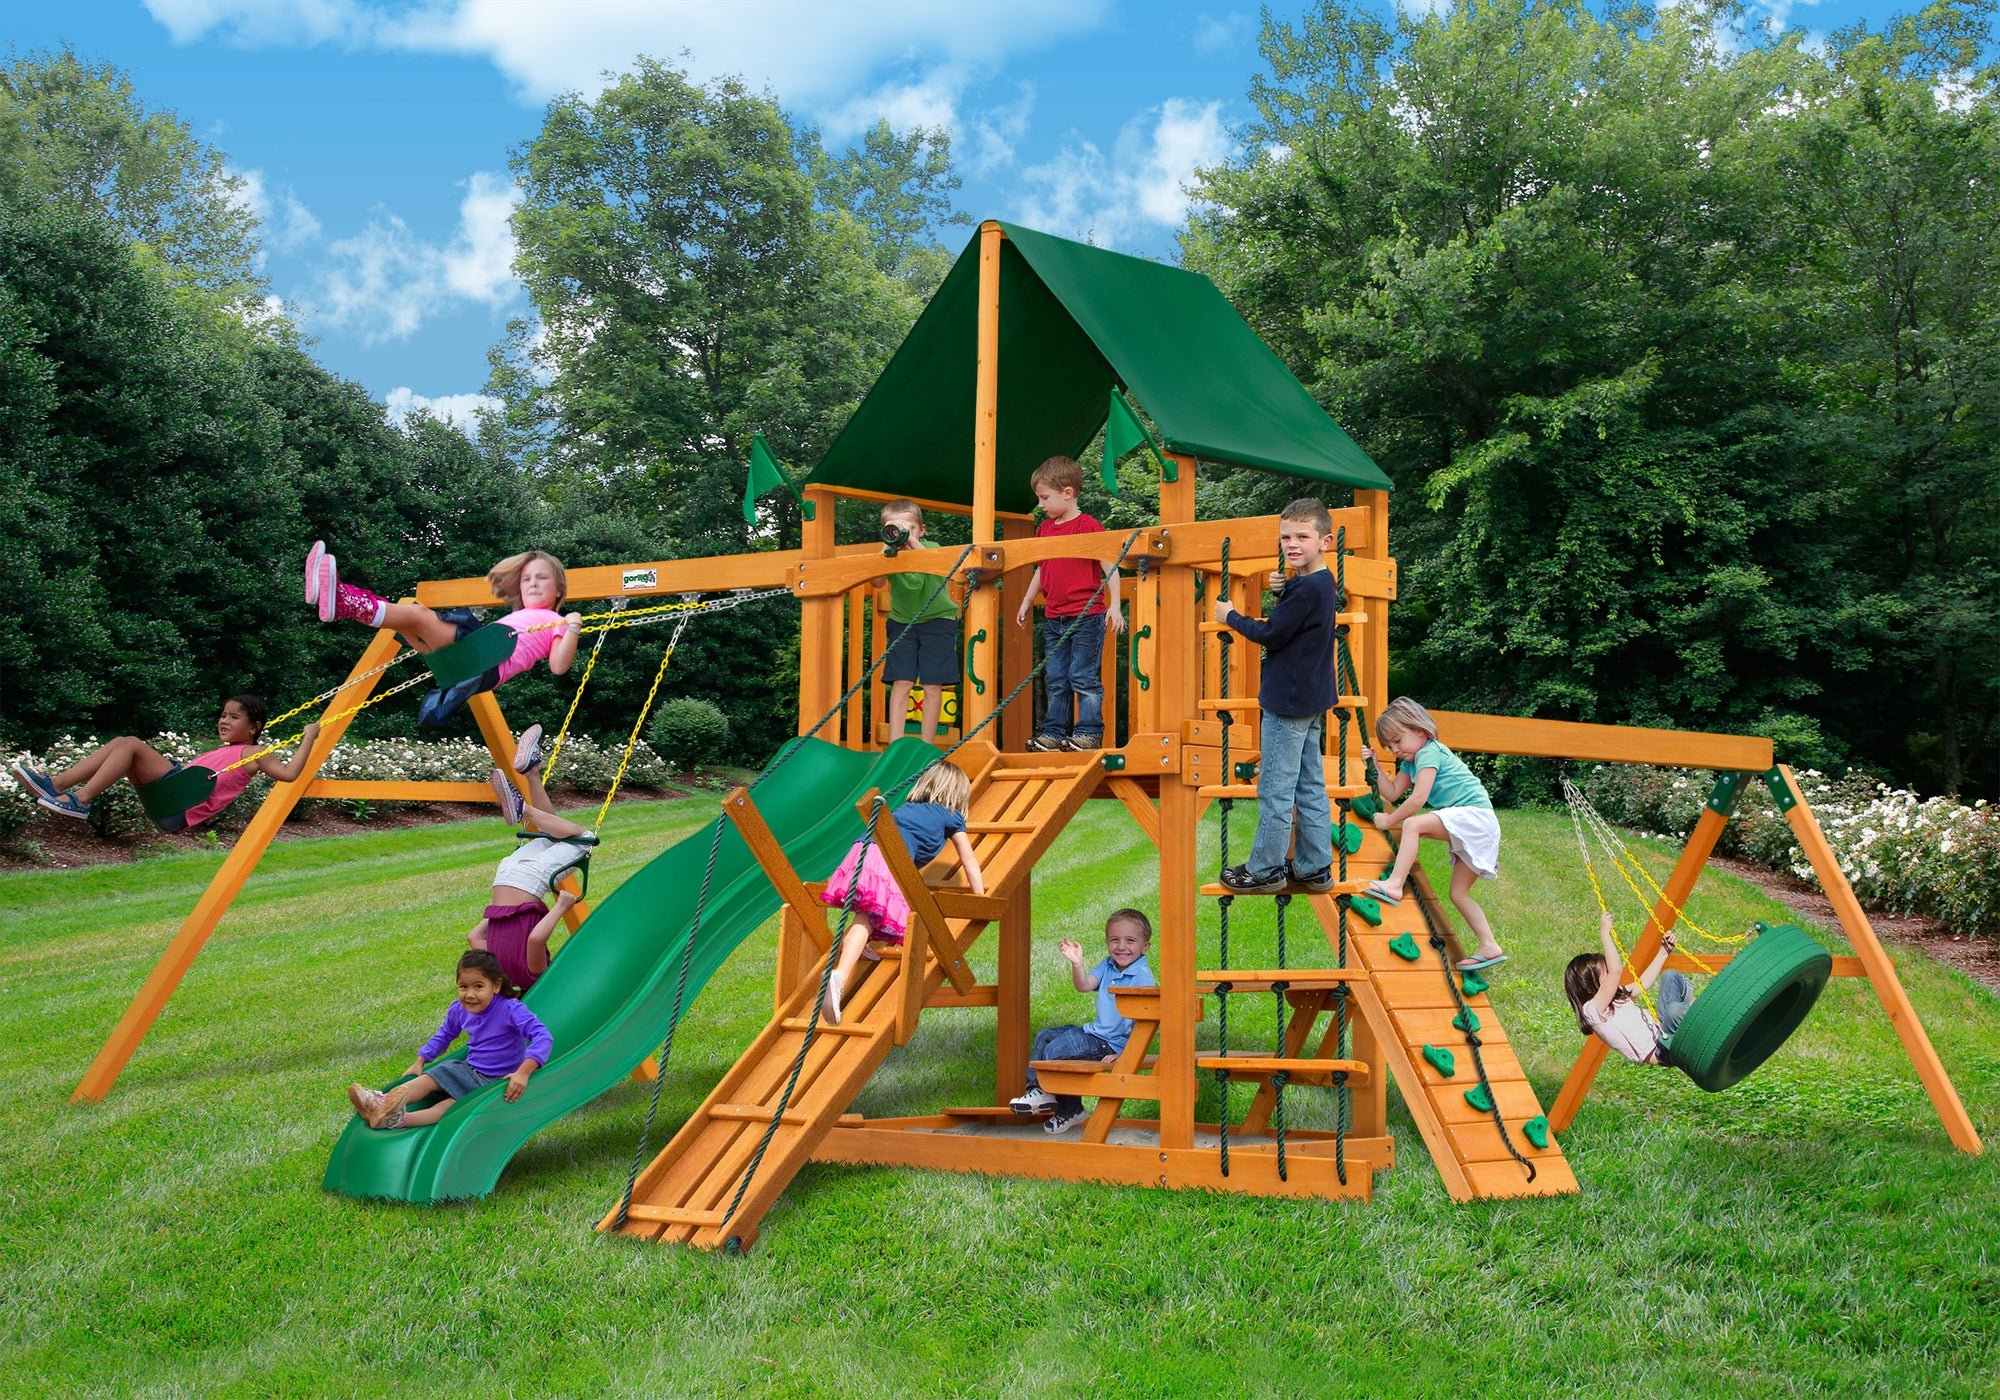 Gorilla Playsets Frontier Sunbrella Forest Green Canopy Swing Set - Swing Set Paradise